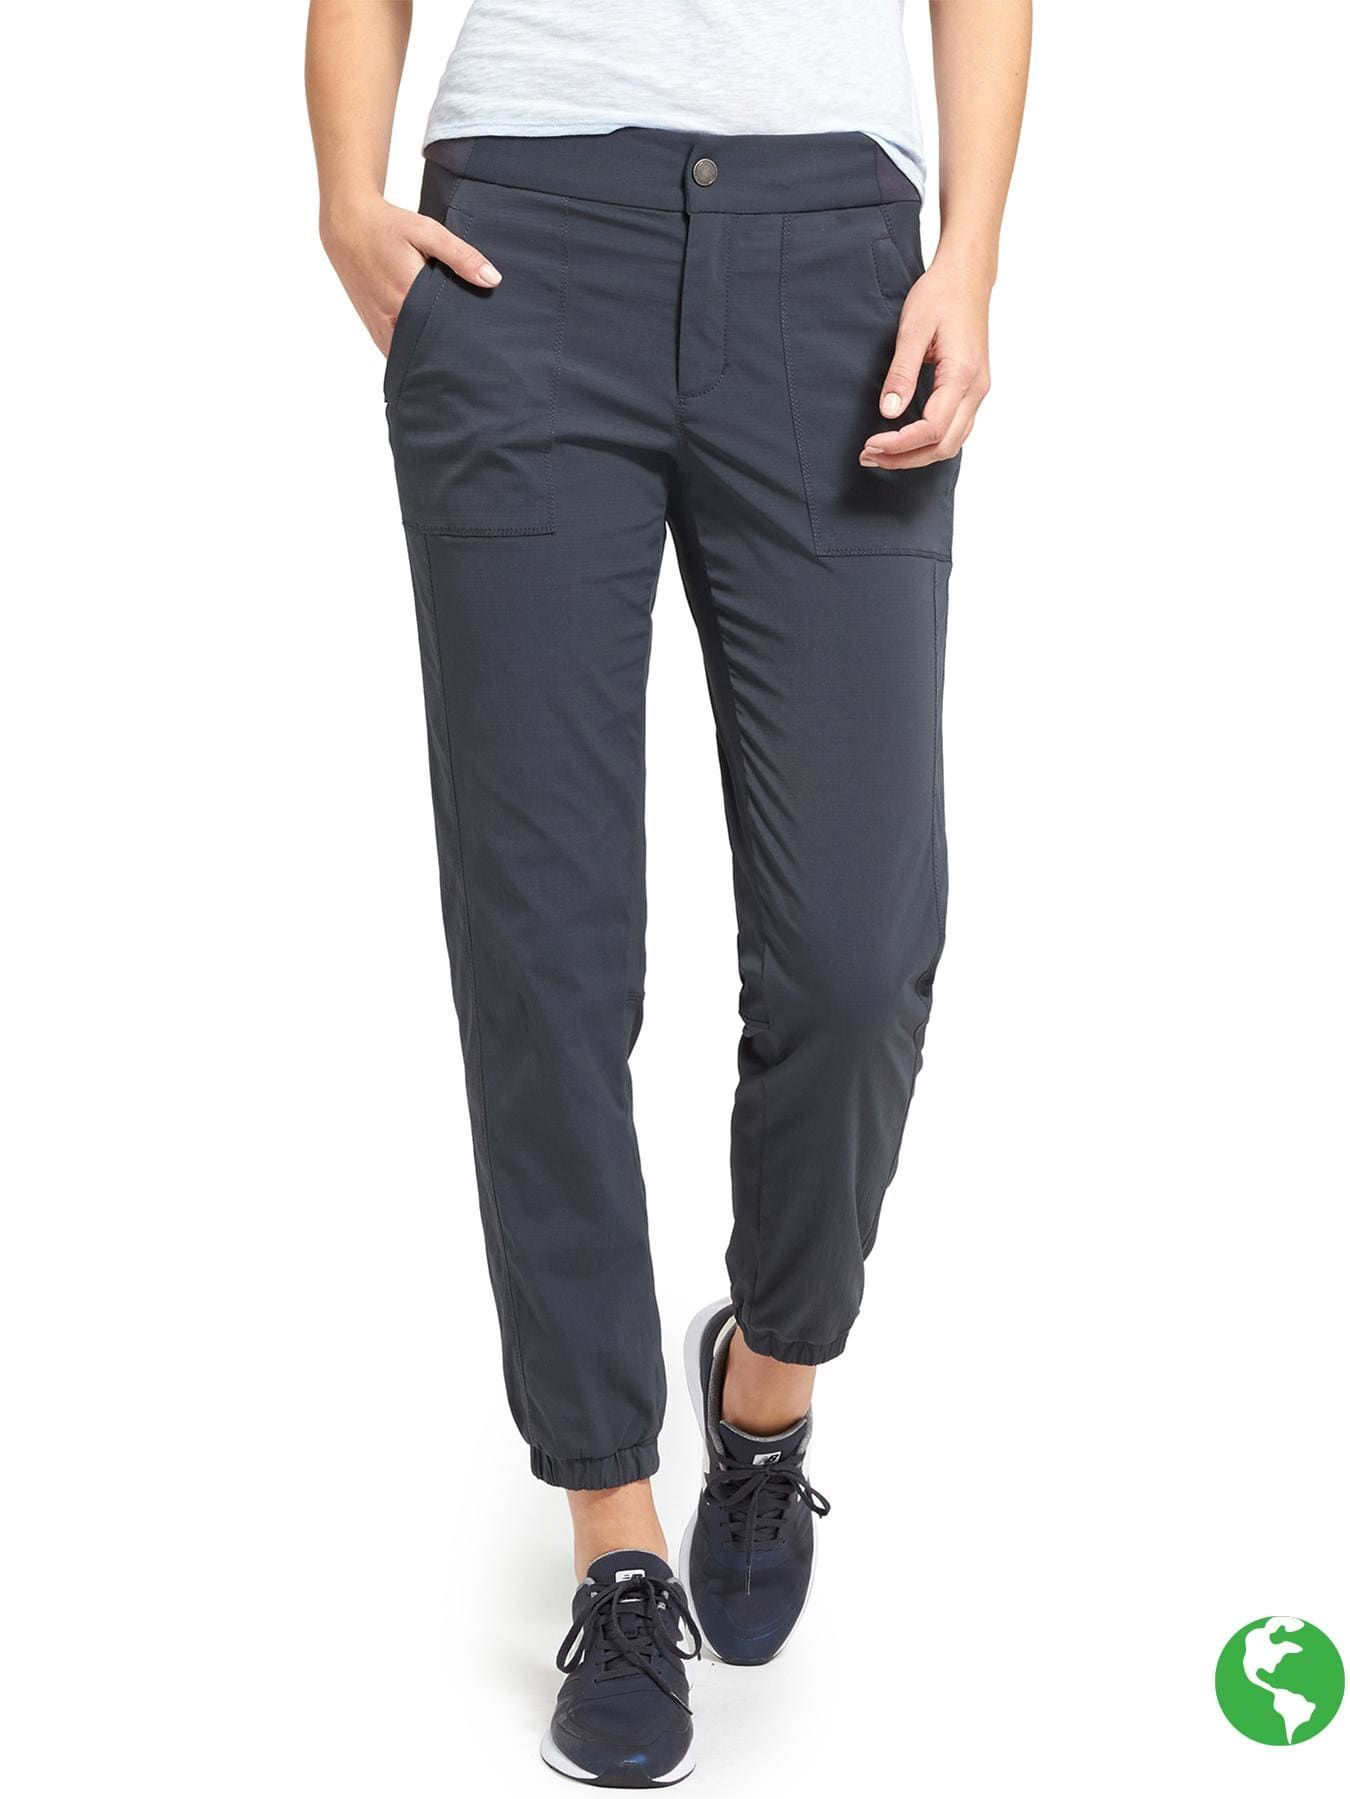 e5661627584f8 I'd like to try pants like this. Athleta Trekkie Jogger 2.0, flint grey